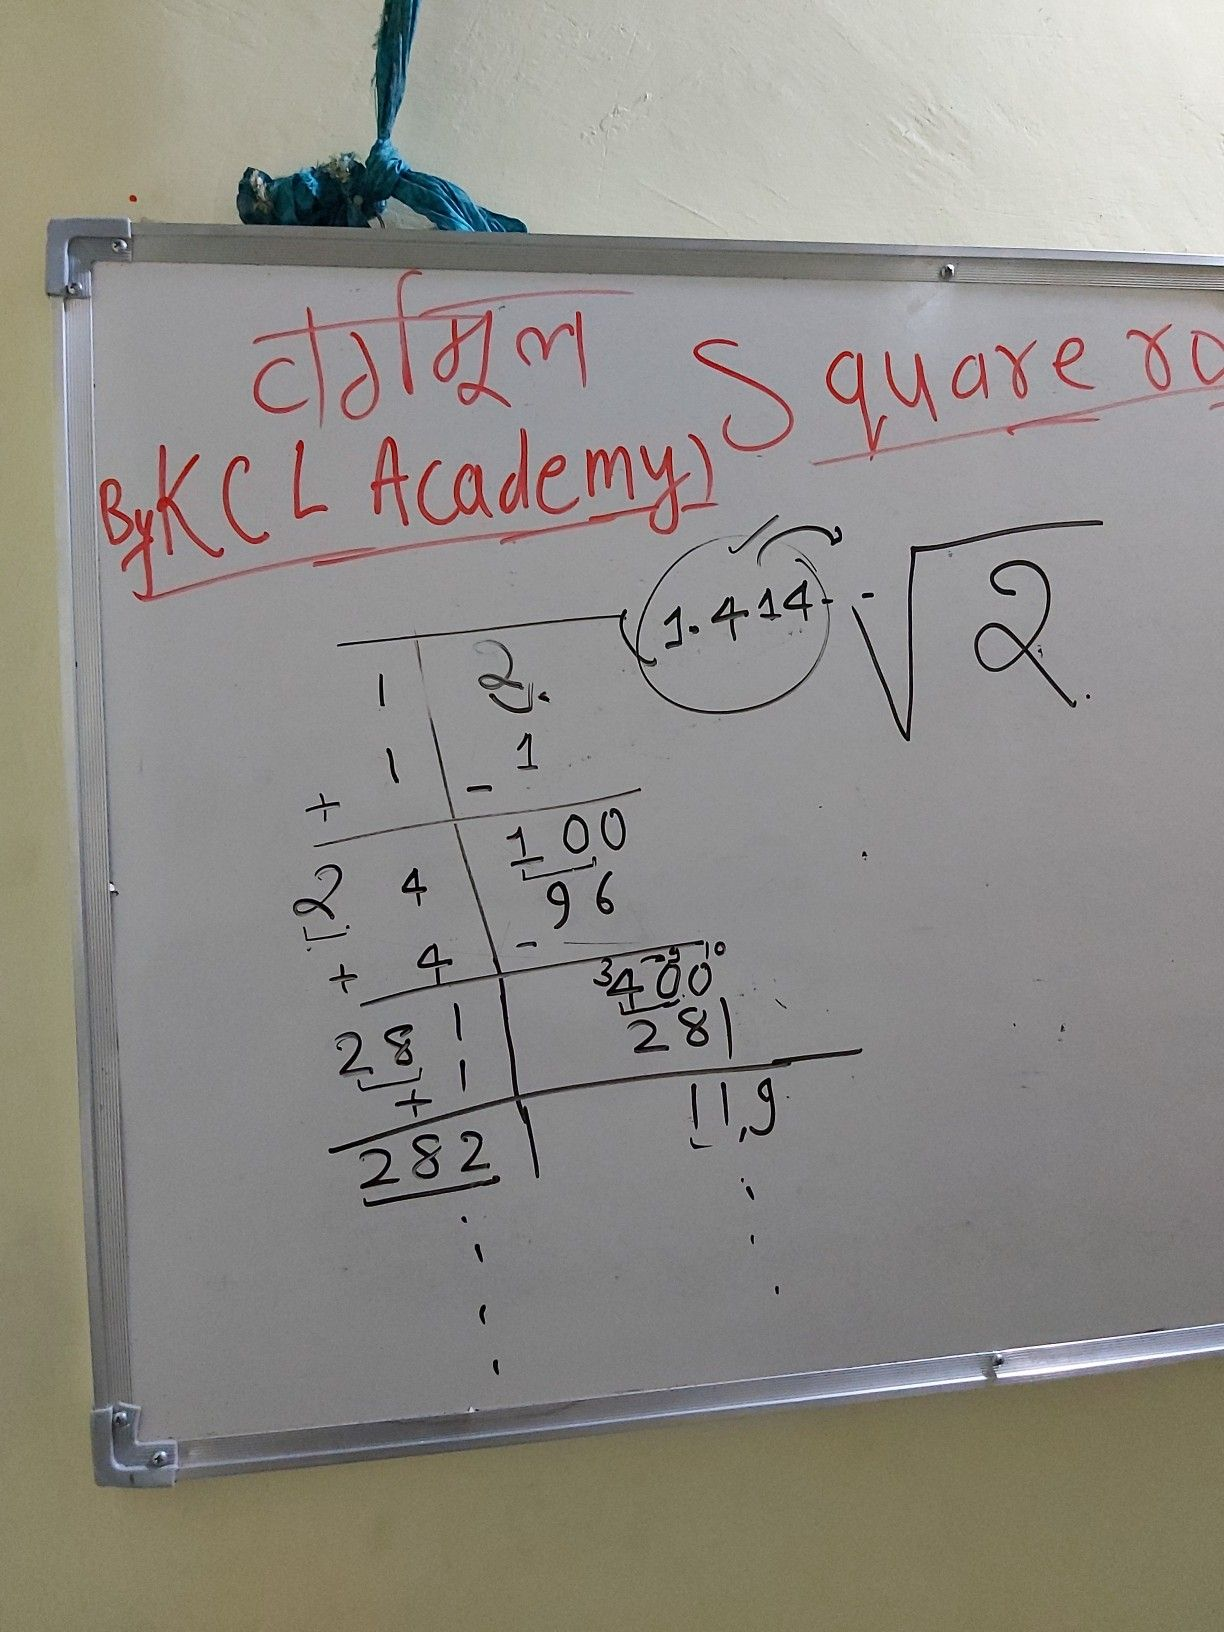 Square root of 12 by using long division method  Math graphic